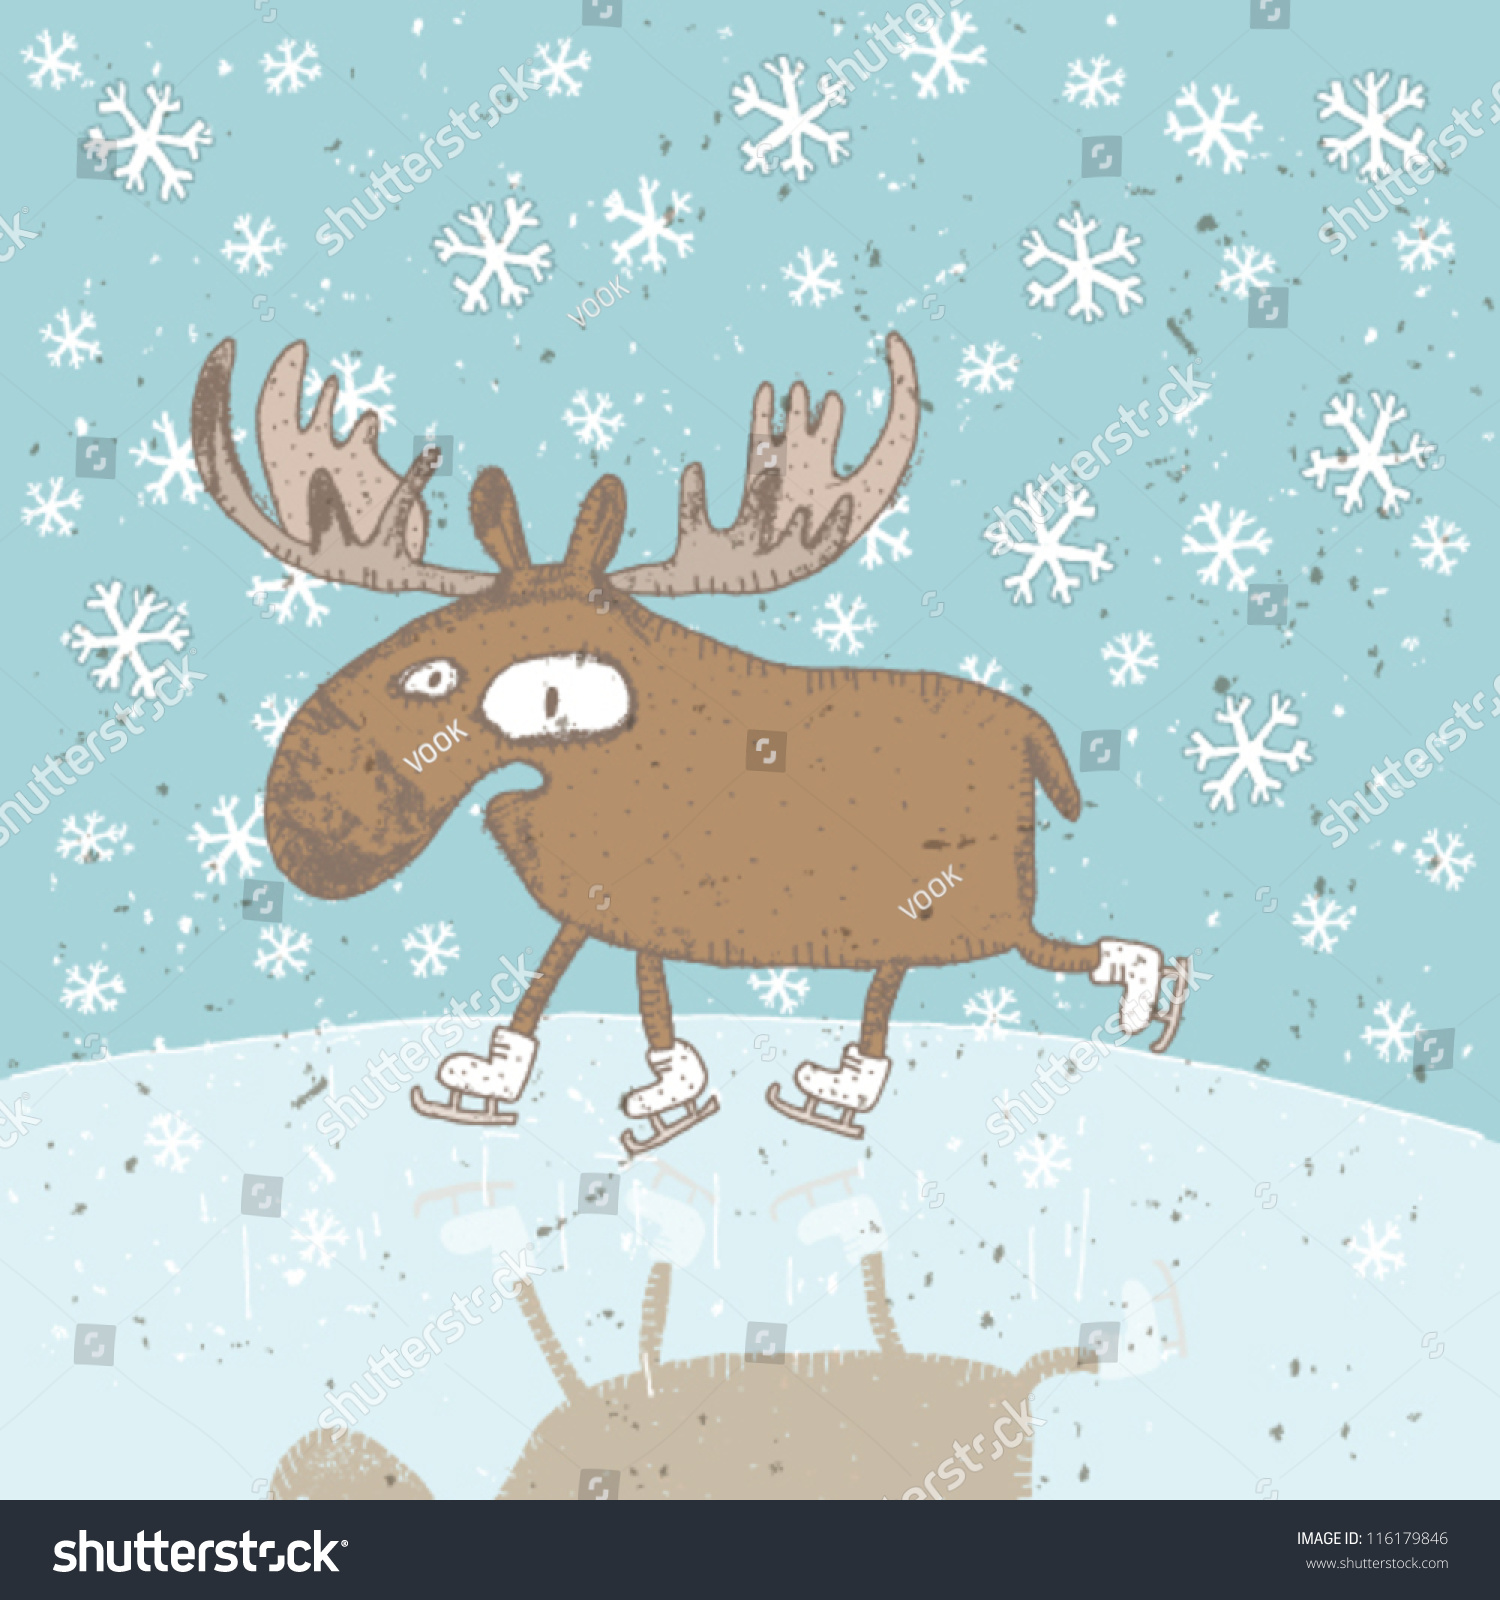 Funny Christmas Card Moose Iceskating On Stock Vector